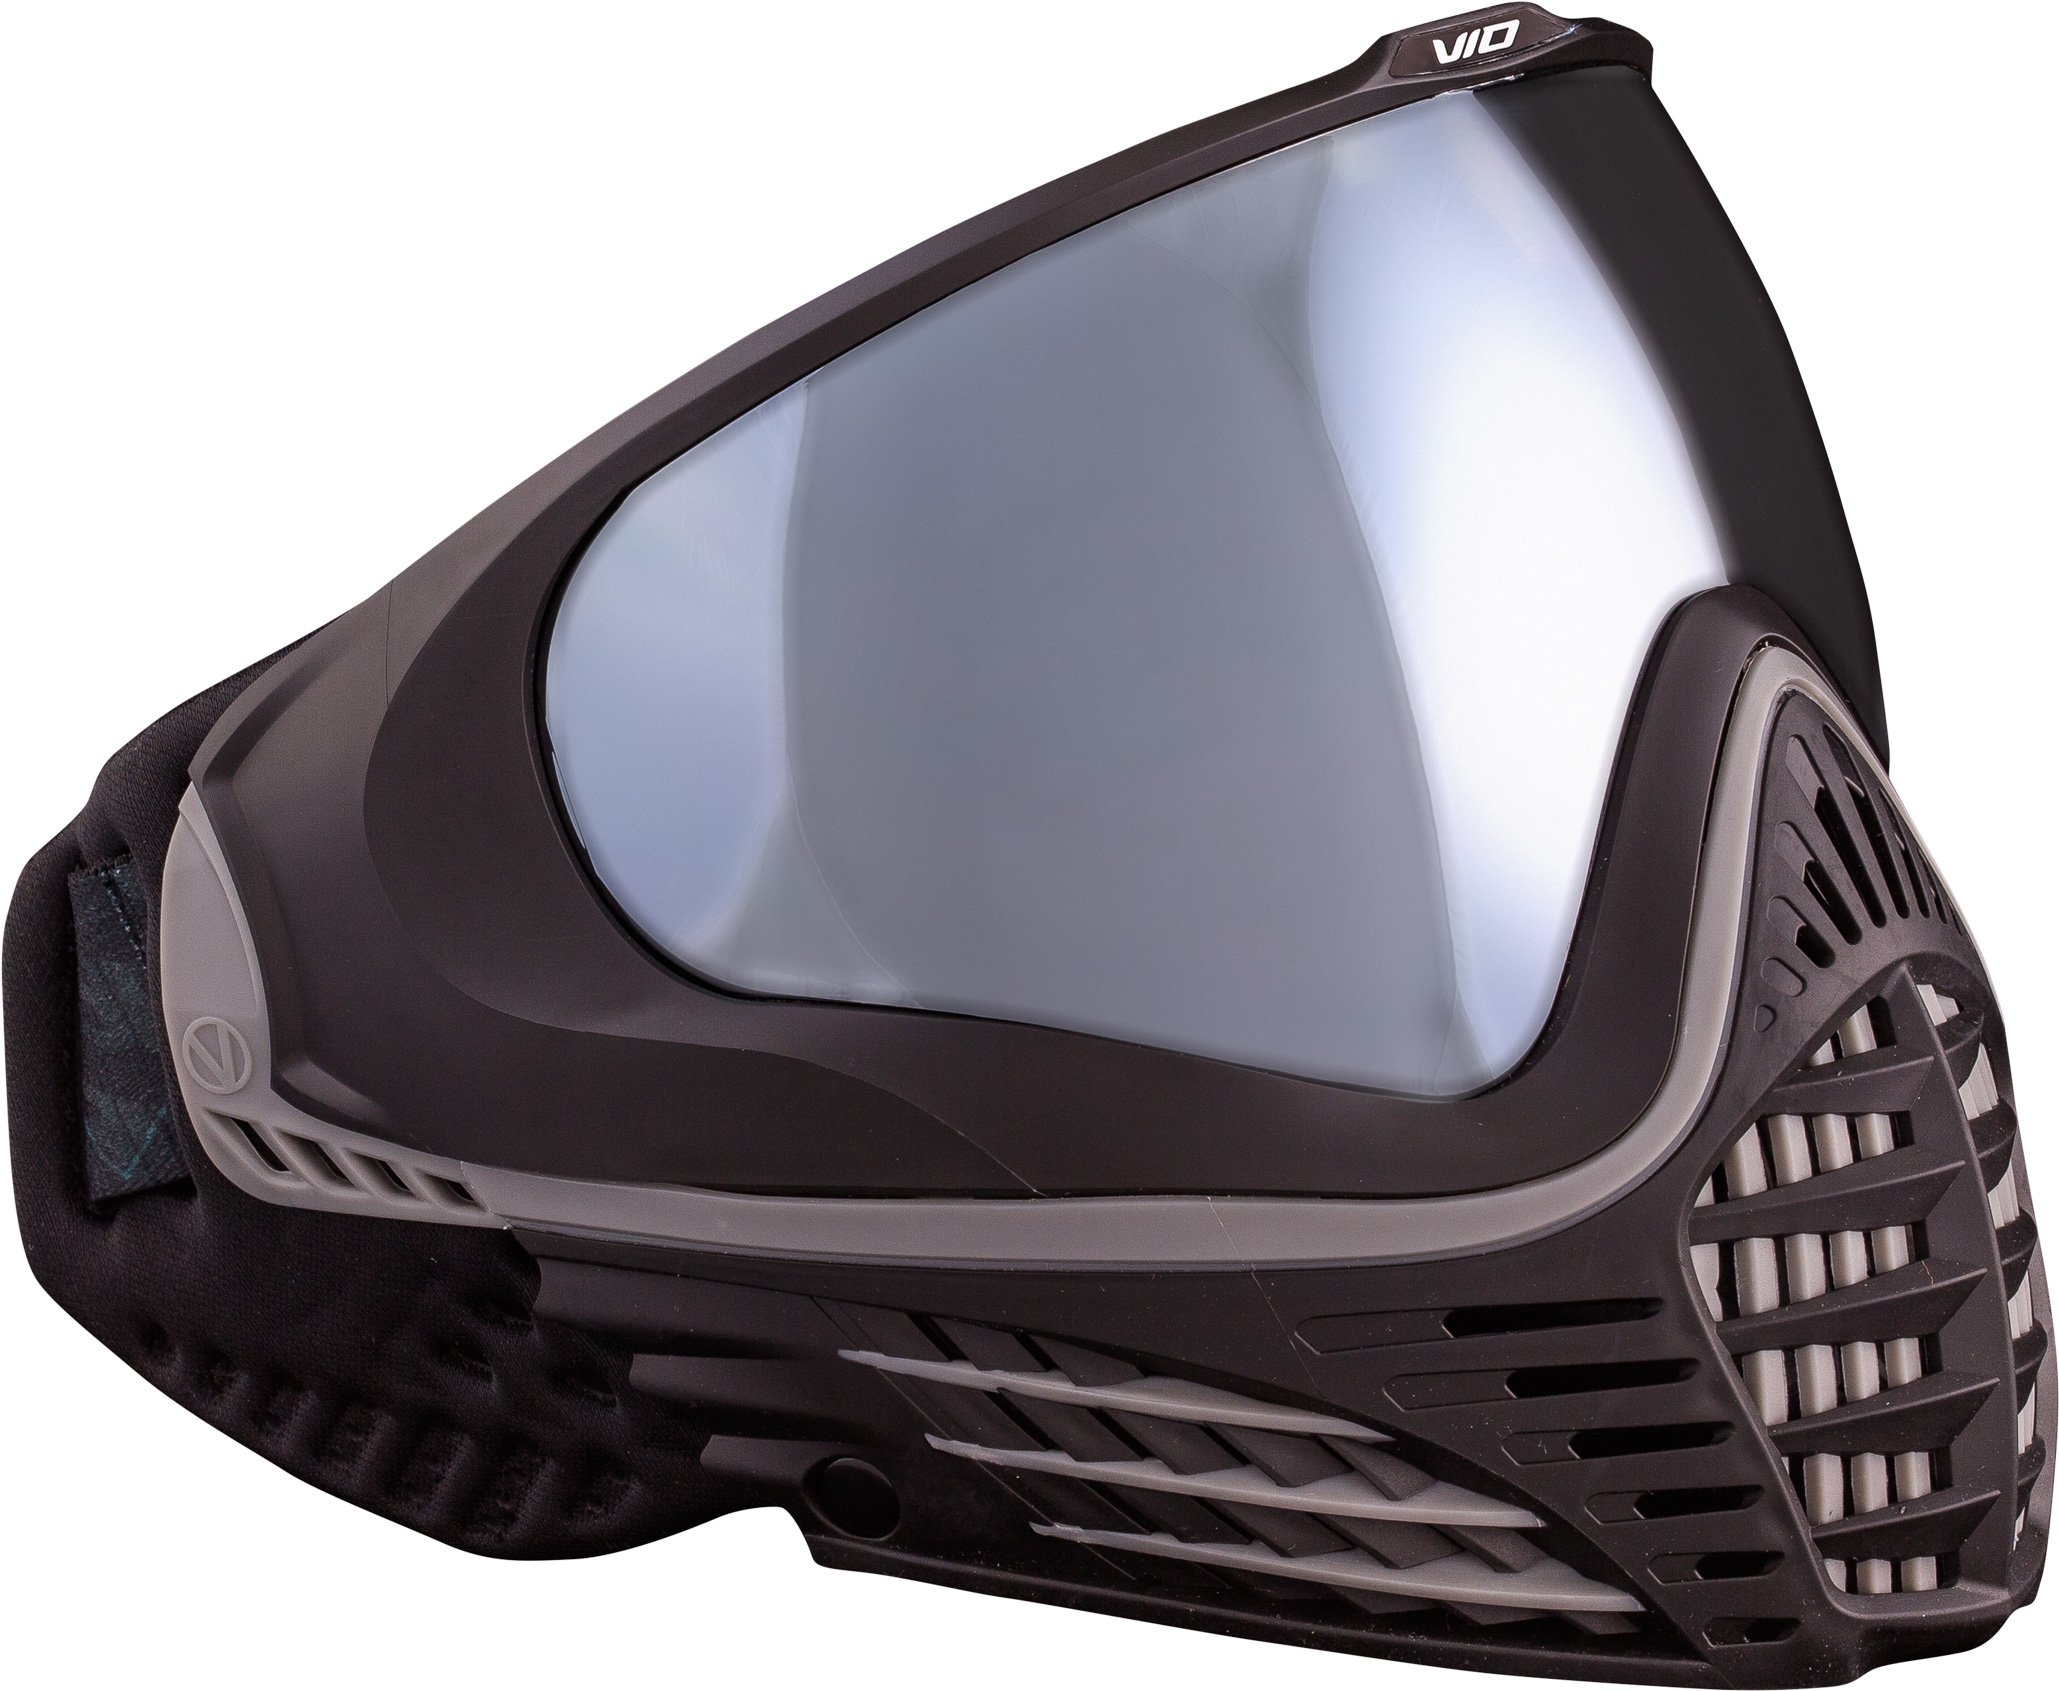 Virtue VIO Contour Thermal Paintball Goggles/Masks - Black Silver by Virtue Paintball